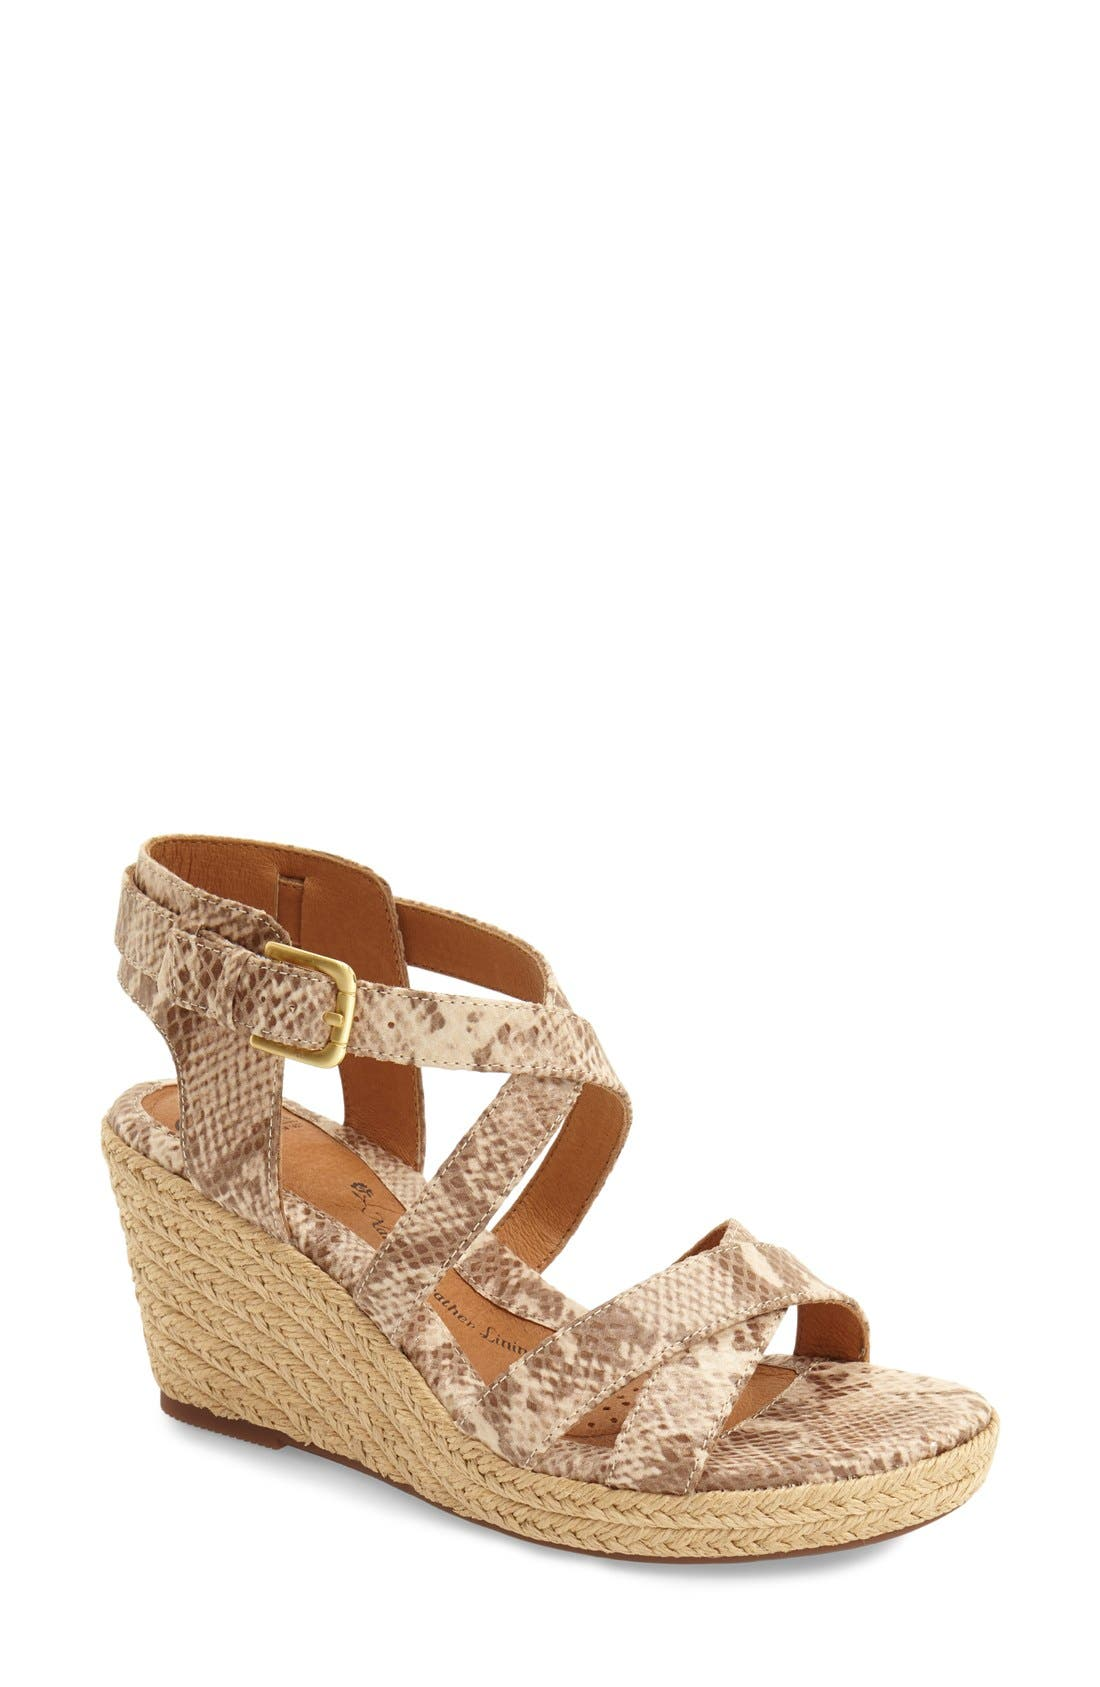 'Inez' Wedge Sandal,                             Main thumbnail 1, color,                             Sand Snake Print Leather